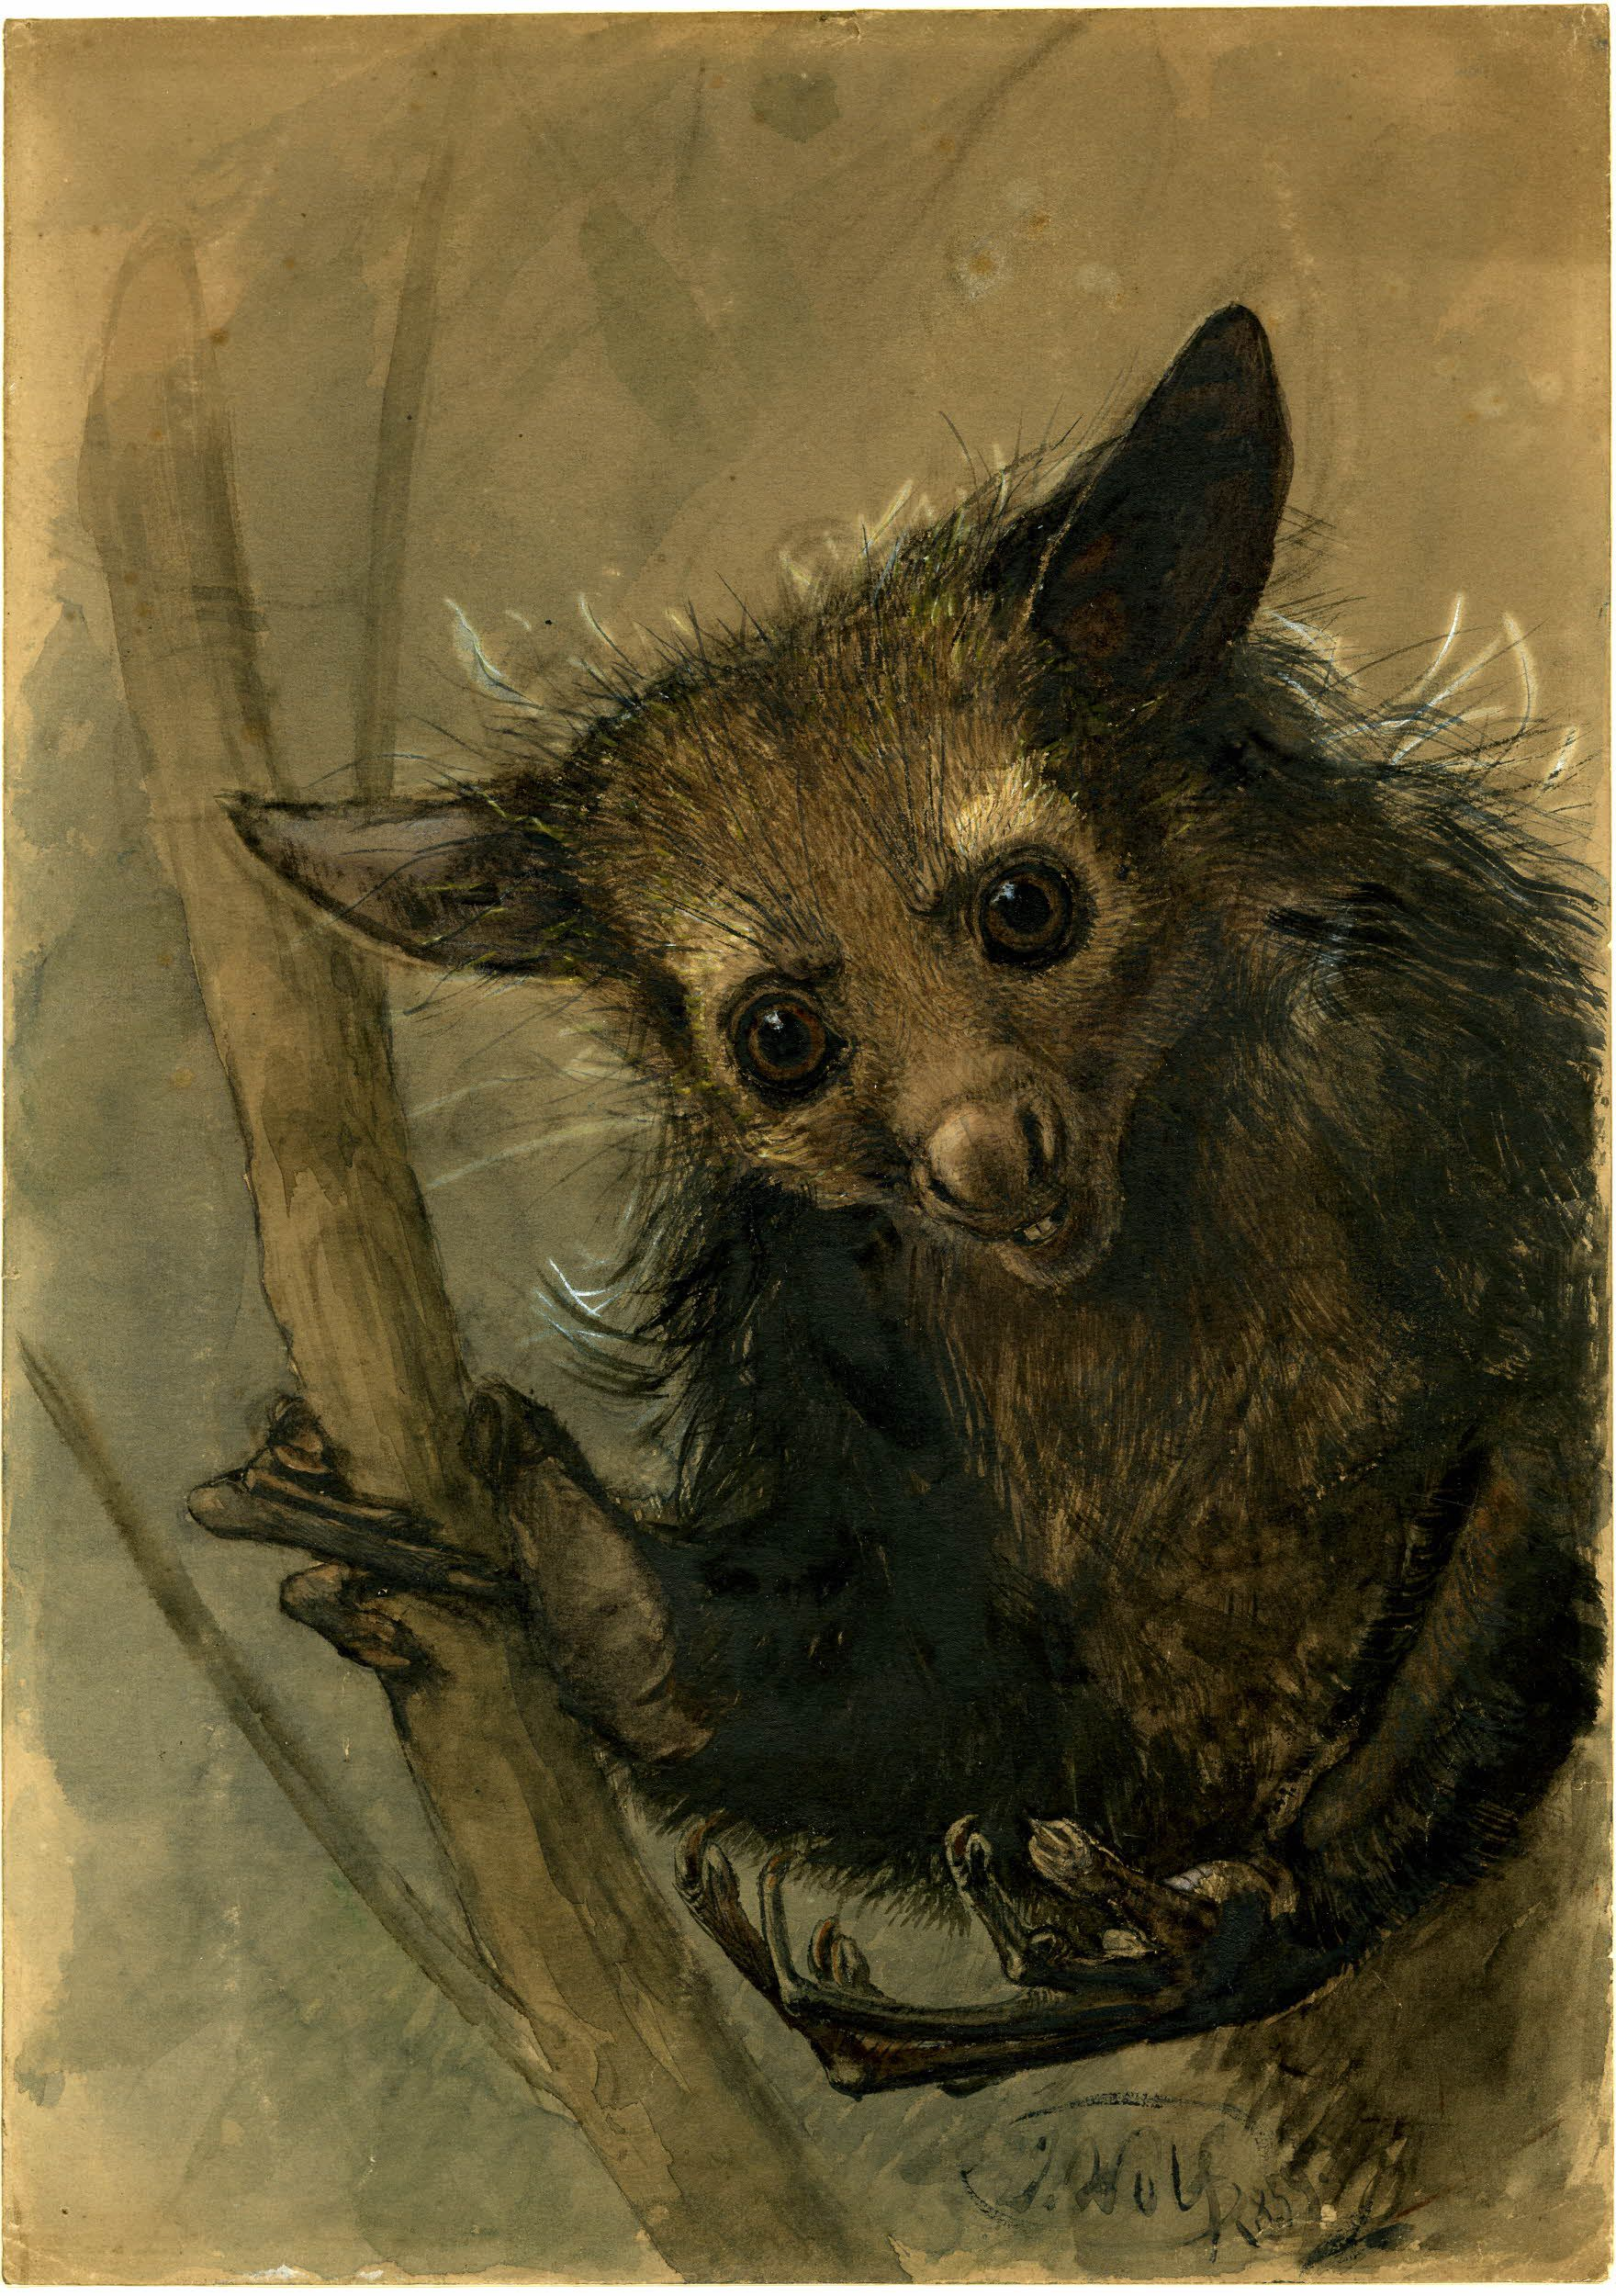 Watercolour painting of an Aye-Aye lemur facing the viewer.